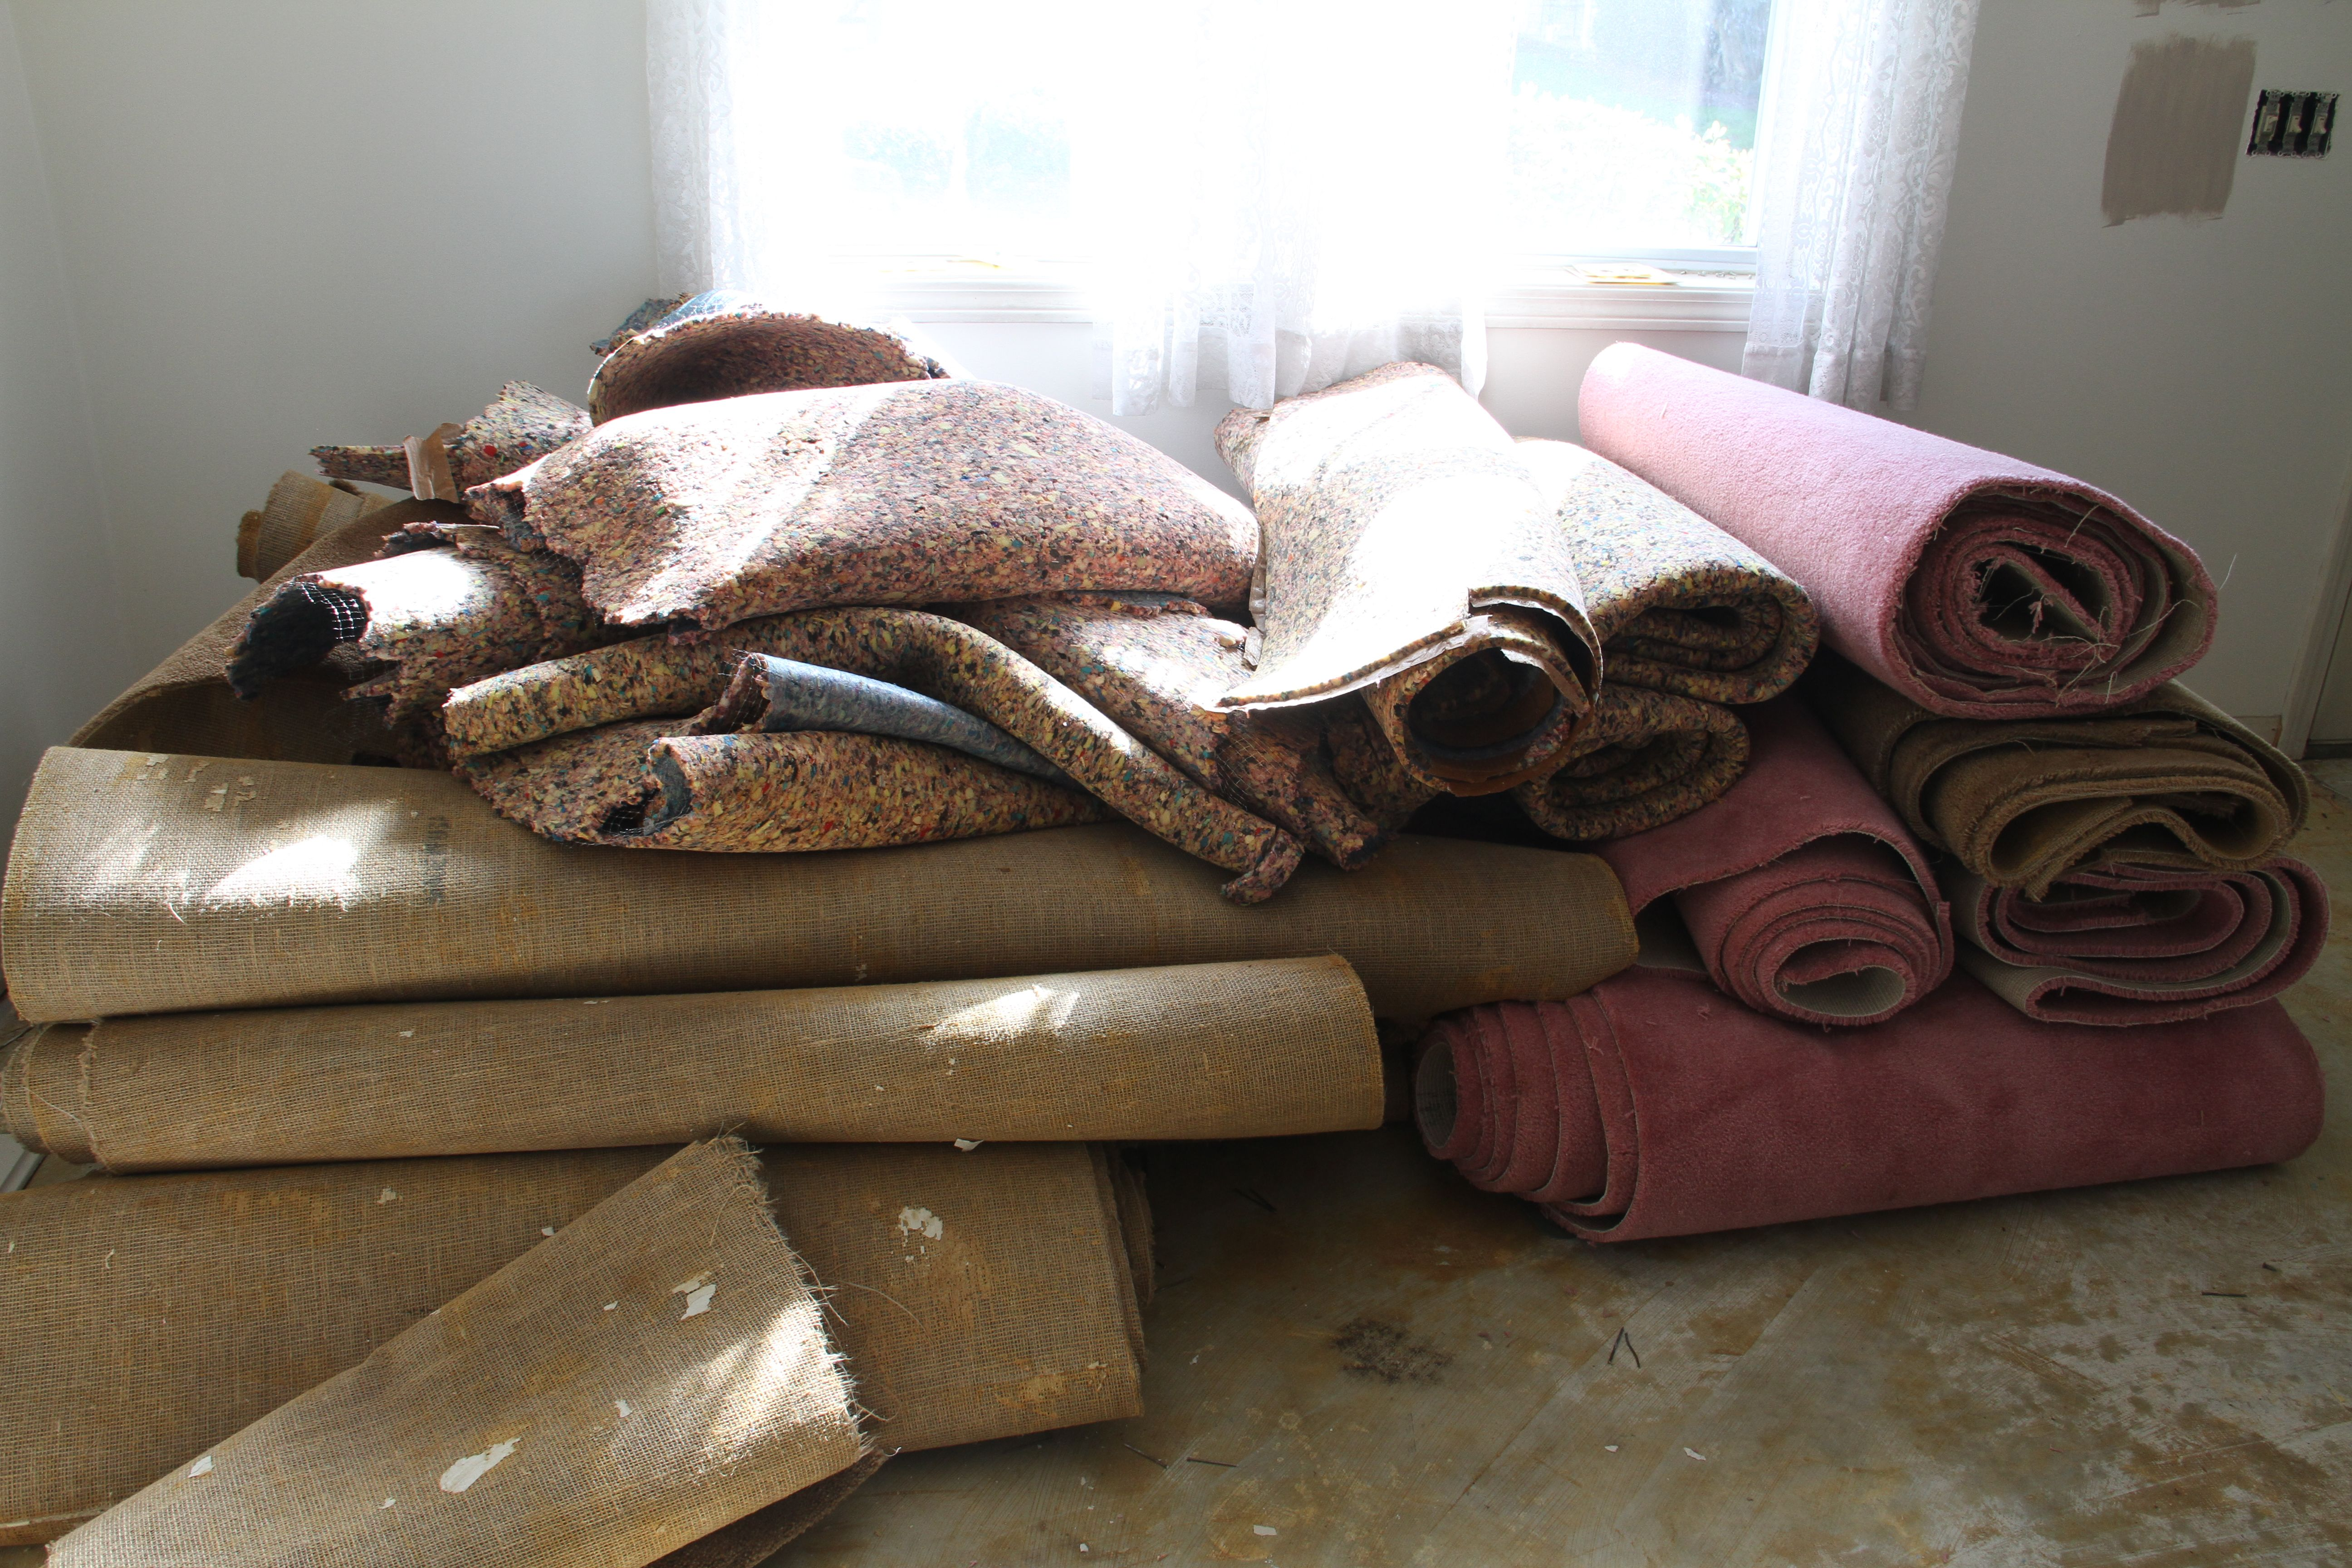 Condo: Fozzie bear brown and dusty rose carpeting that smelled like 30+ years of pet ownership just had to go.